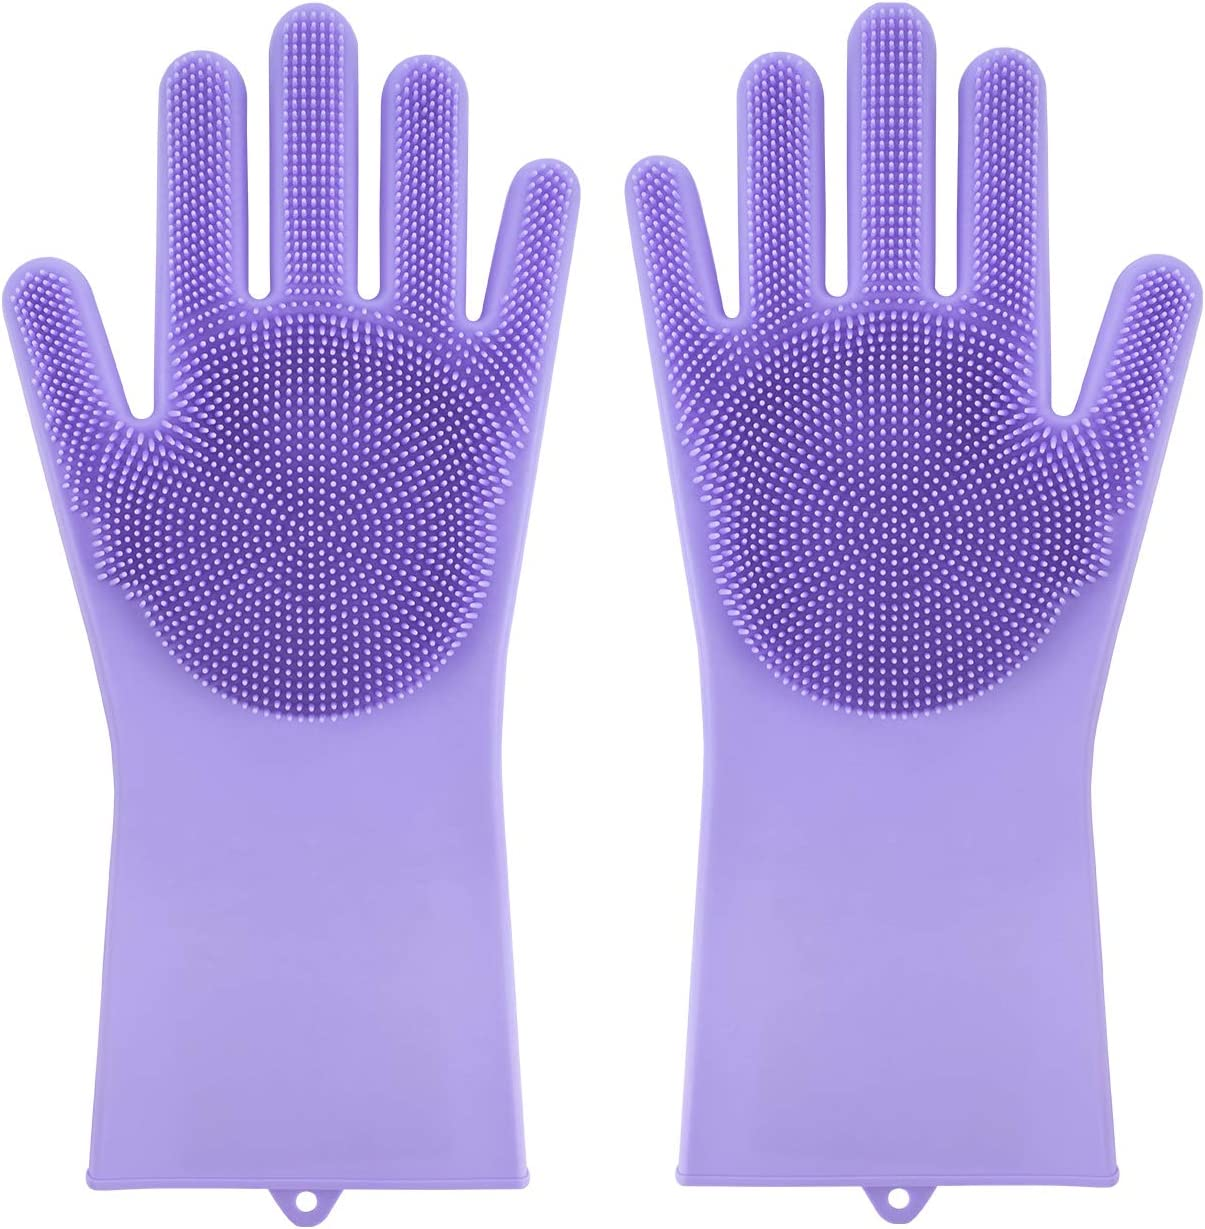 Scrub Glove for Dishes,Magic Silicone Dishwashing Gloves with Scrubbers, Hand Clean Scrub Glove for Cleaning Kitchen (Purple,1 Pair)